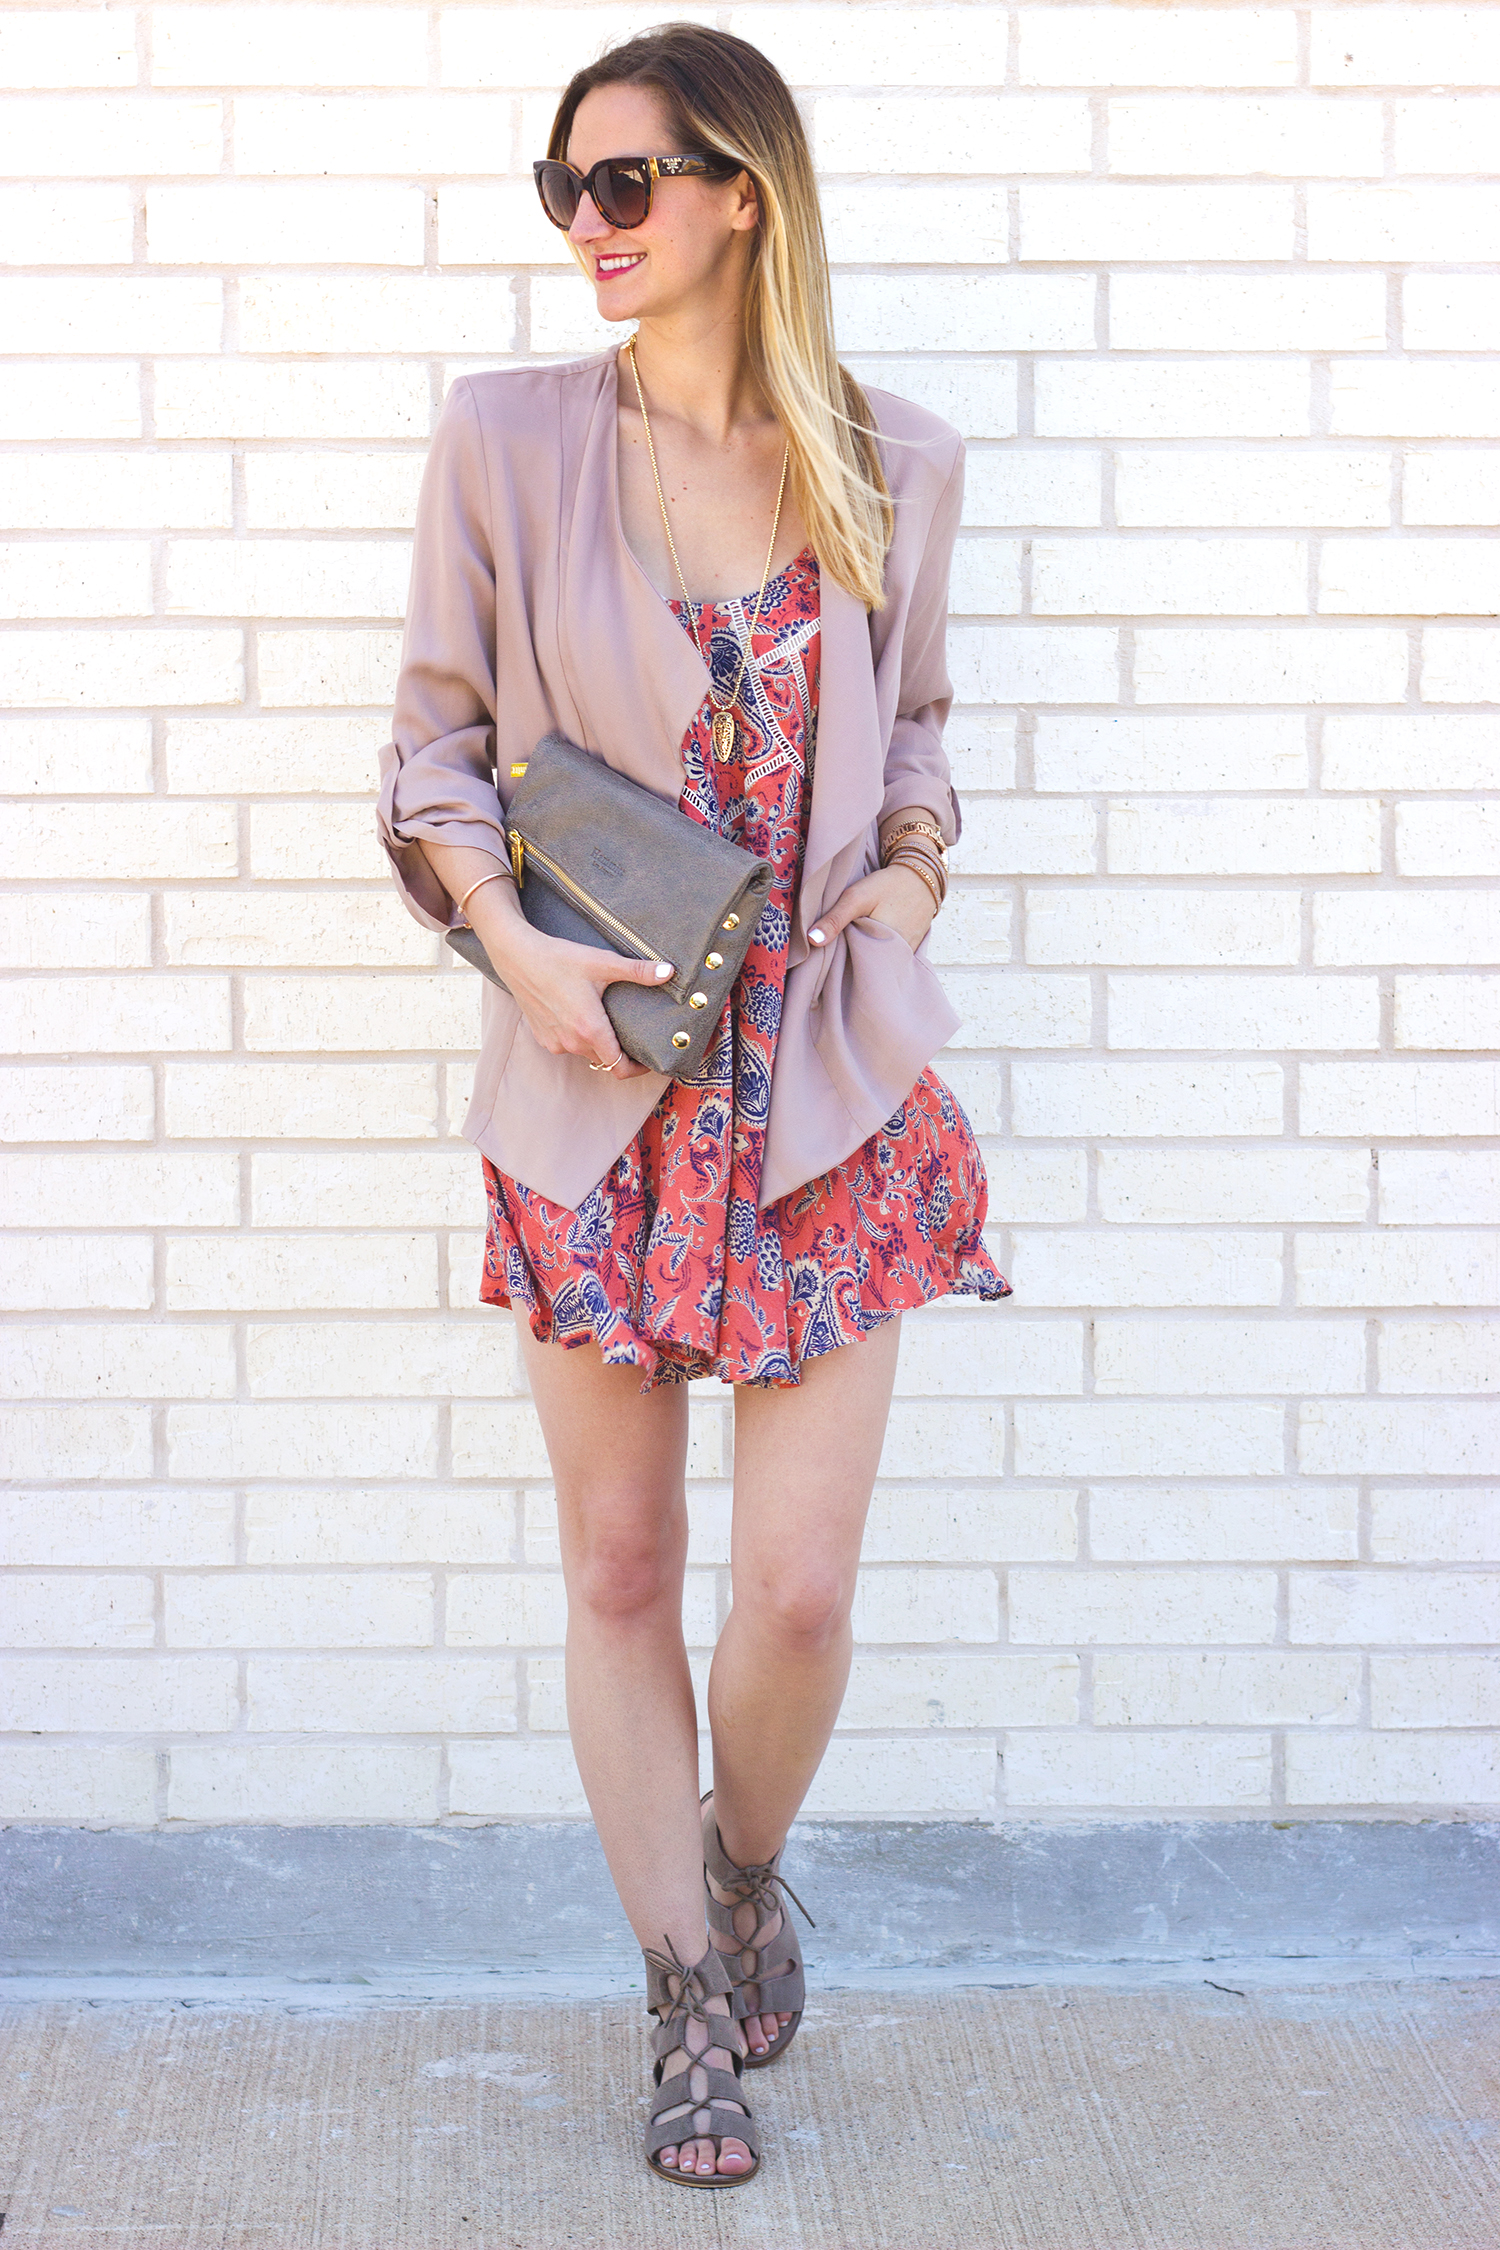 livvyland-blog-olivia-watson-austin-texas-fashion-blogger-razorback-shift-dress-paisley-printed-hammitt-la-vip-clutch-blush-draped-front-jacket-blazer-6